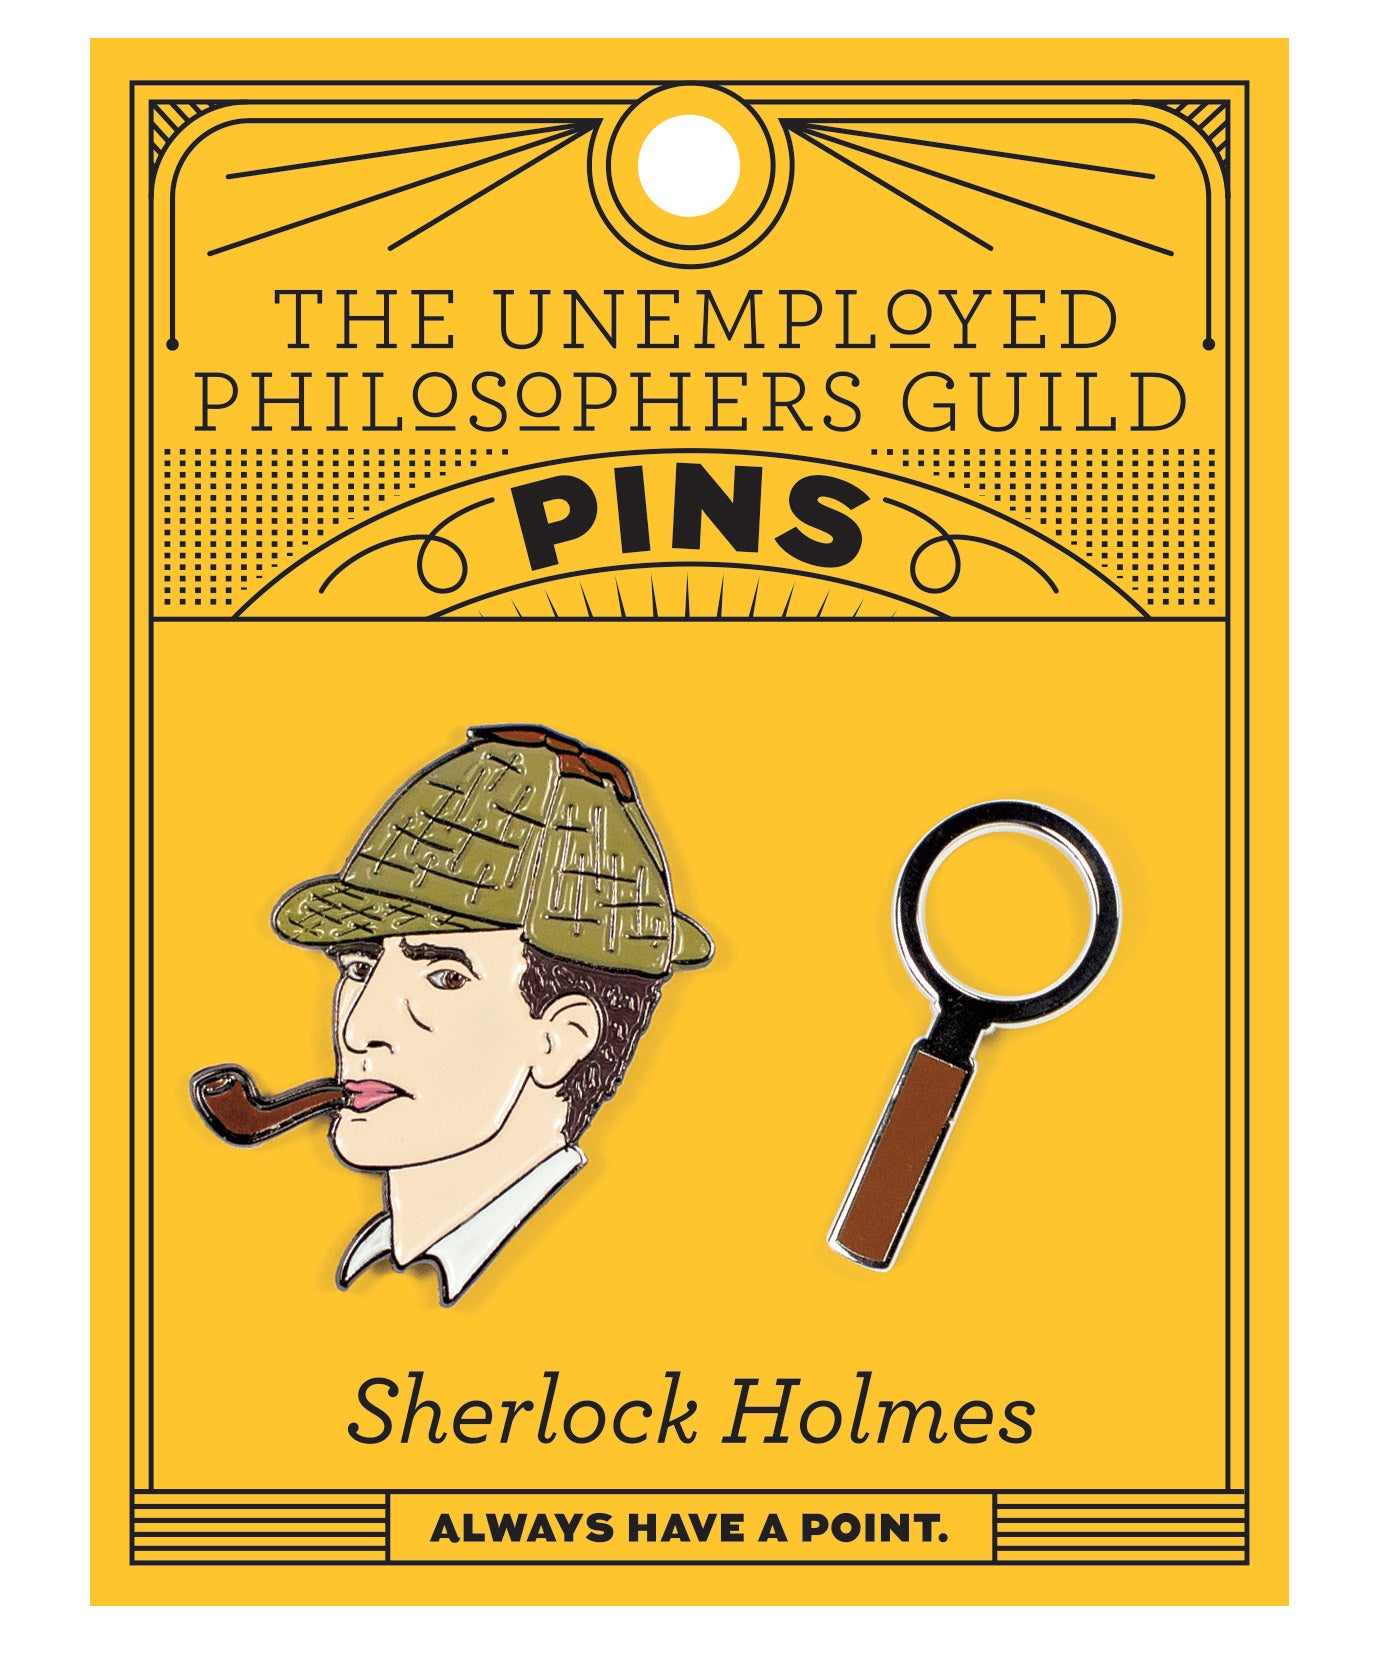 Holmes & Magnifying Glass Pins - The Unemployed Philosophers Guild